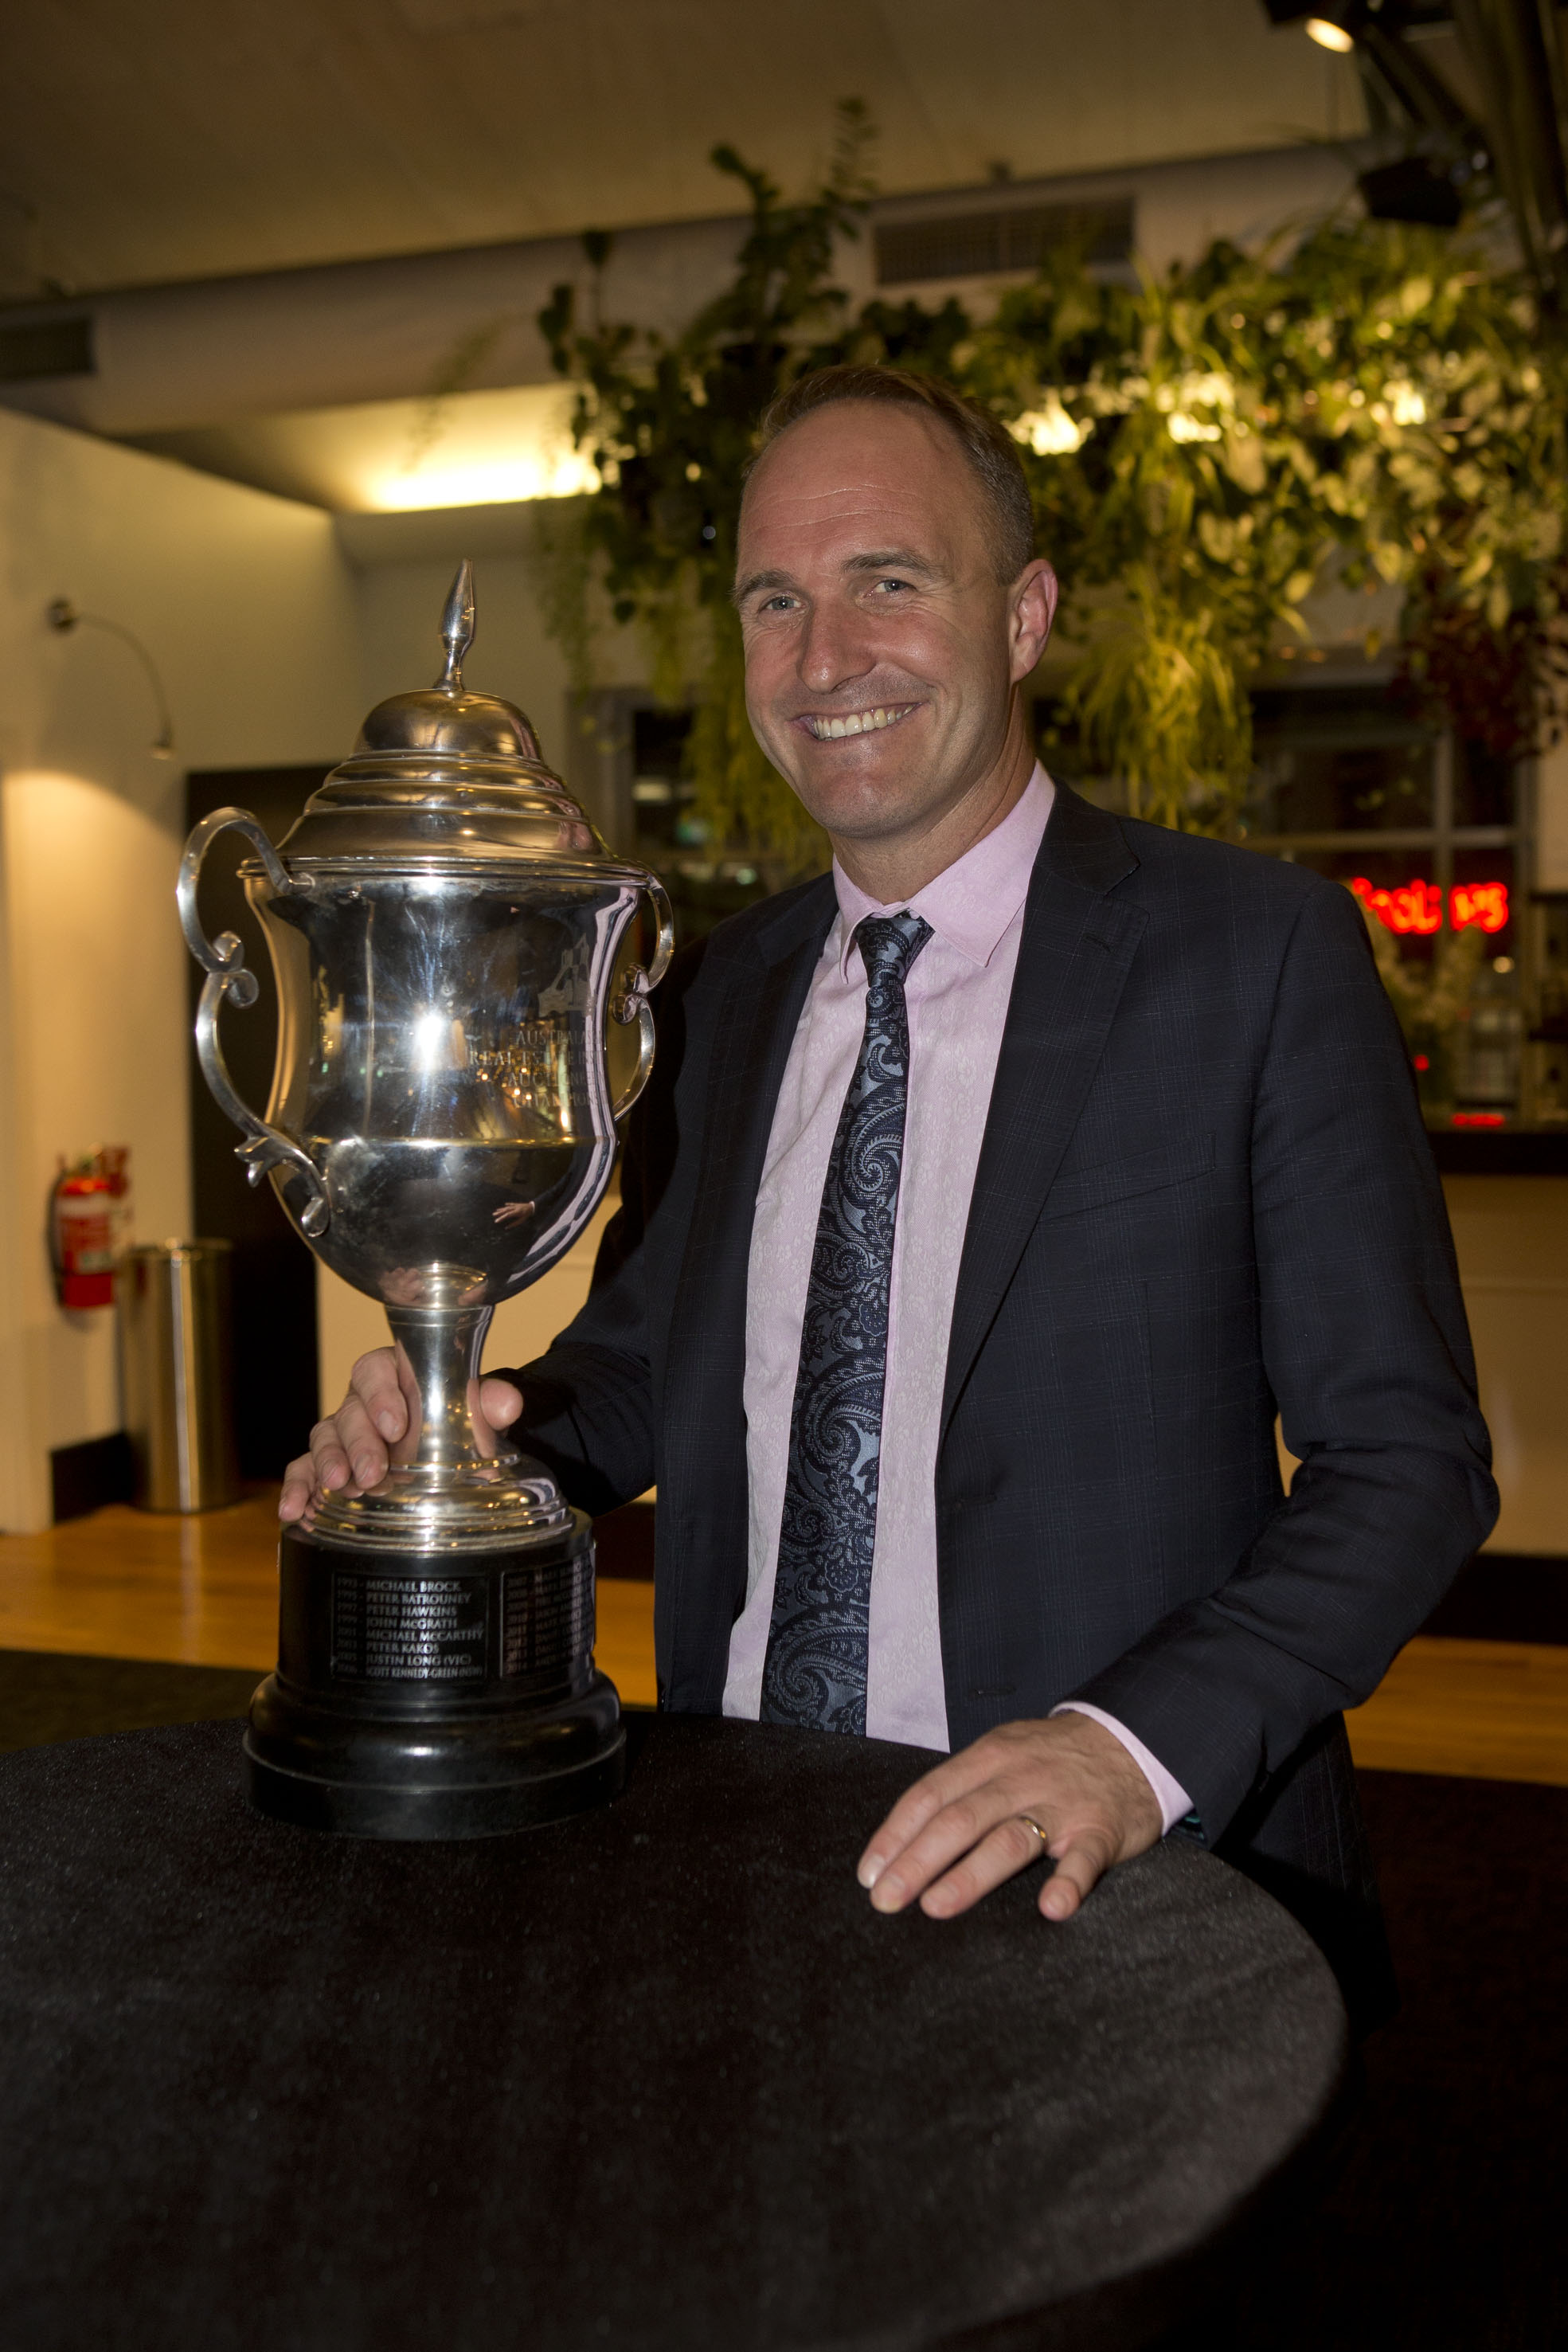 New Zealand tops the 2018 Australasian Auctioneering Championships